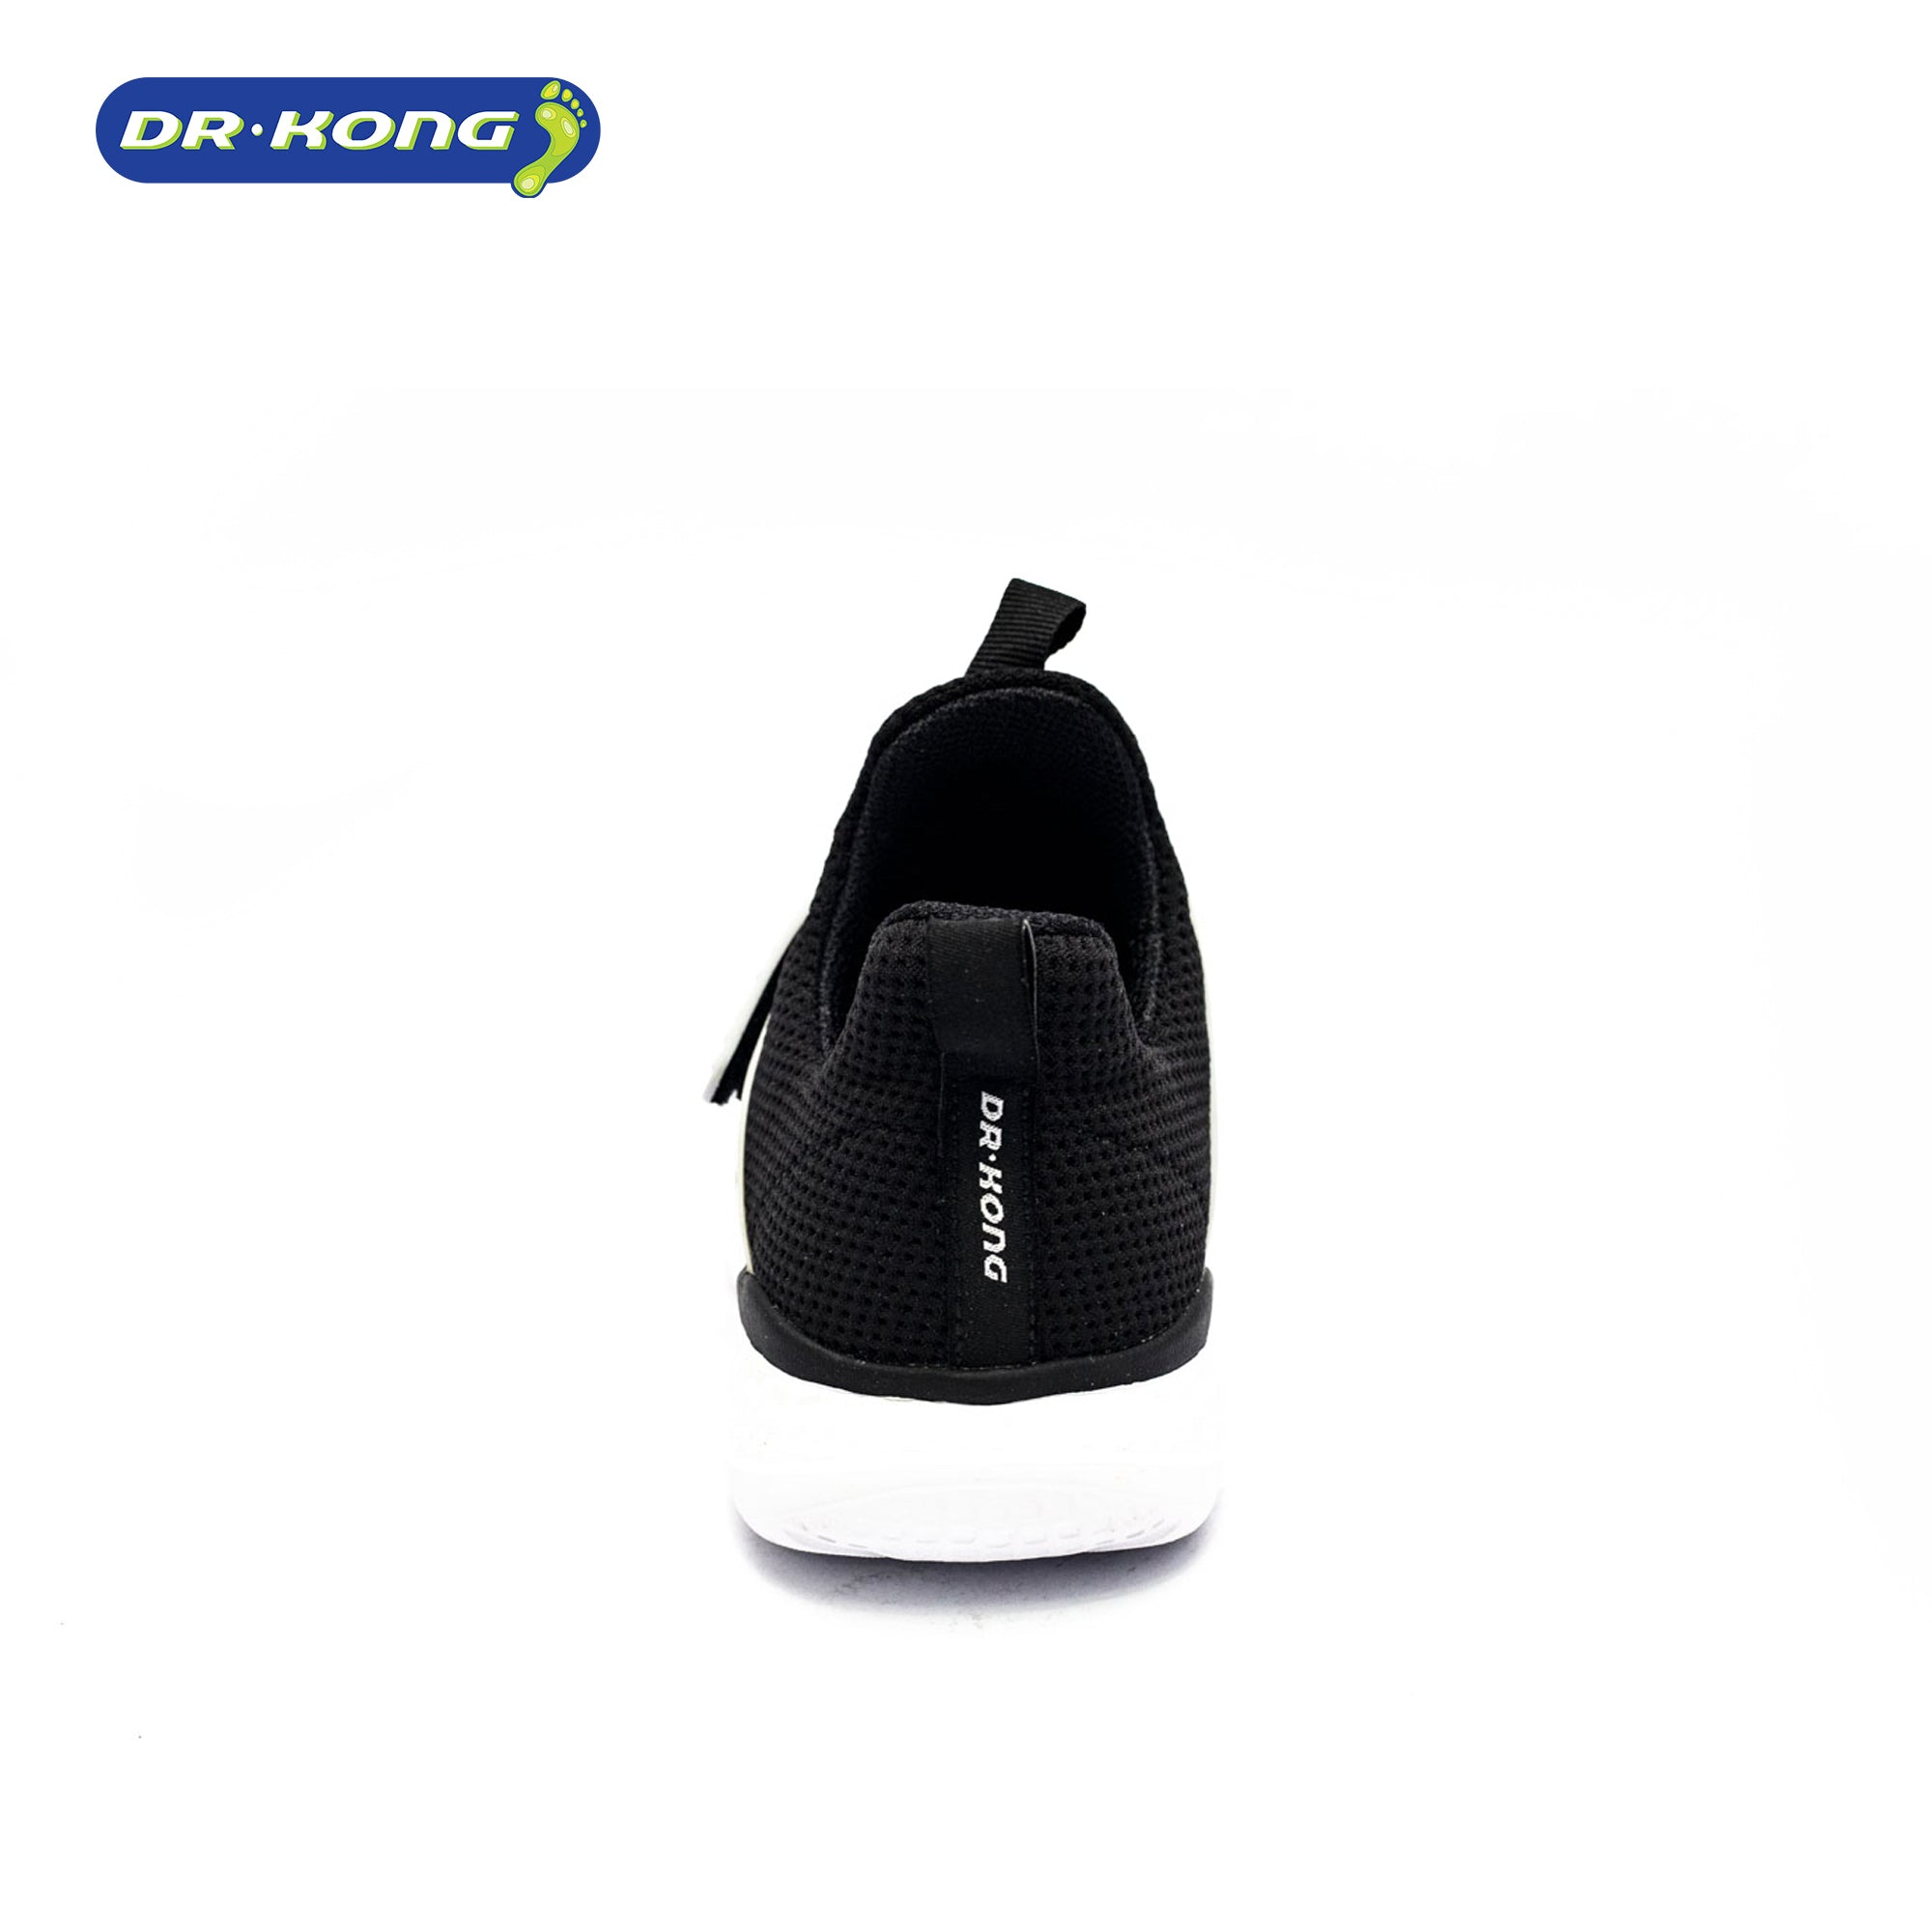 Dr. Kong Healthy Childrens Sneakers (Blk/Gray) c1000175